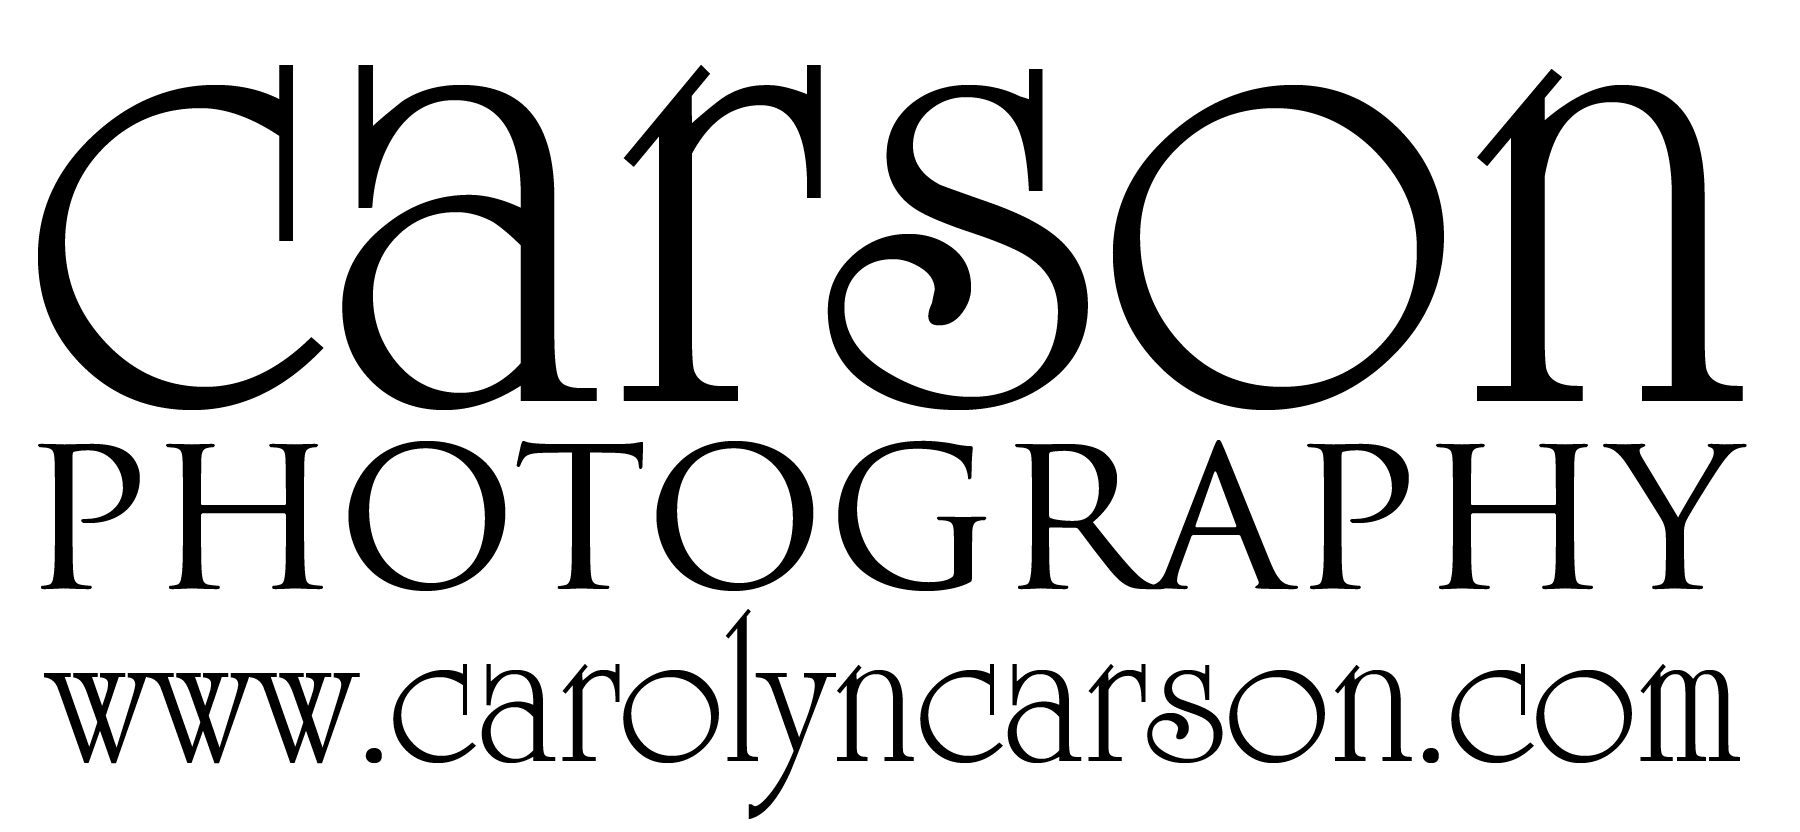 Carson Photography Text Logo Large